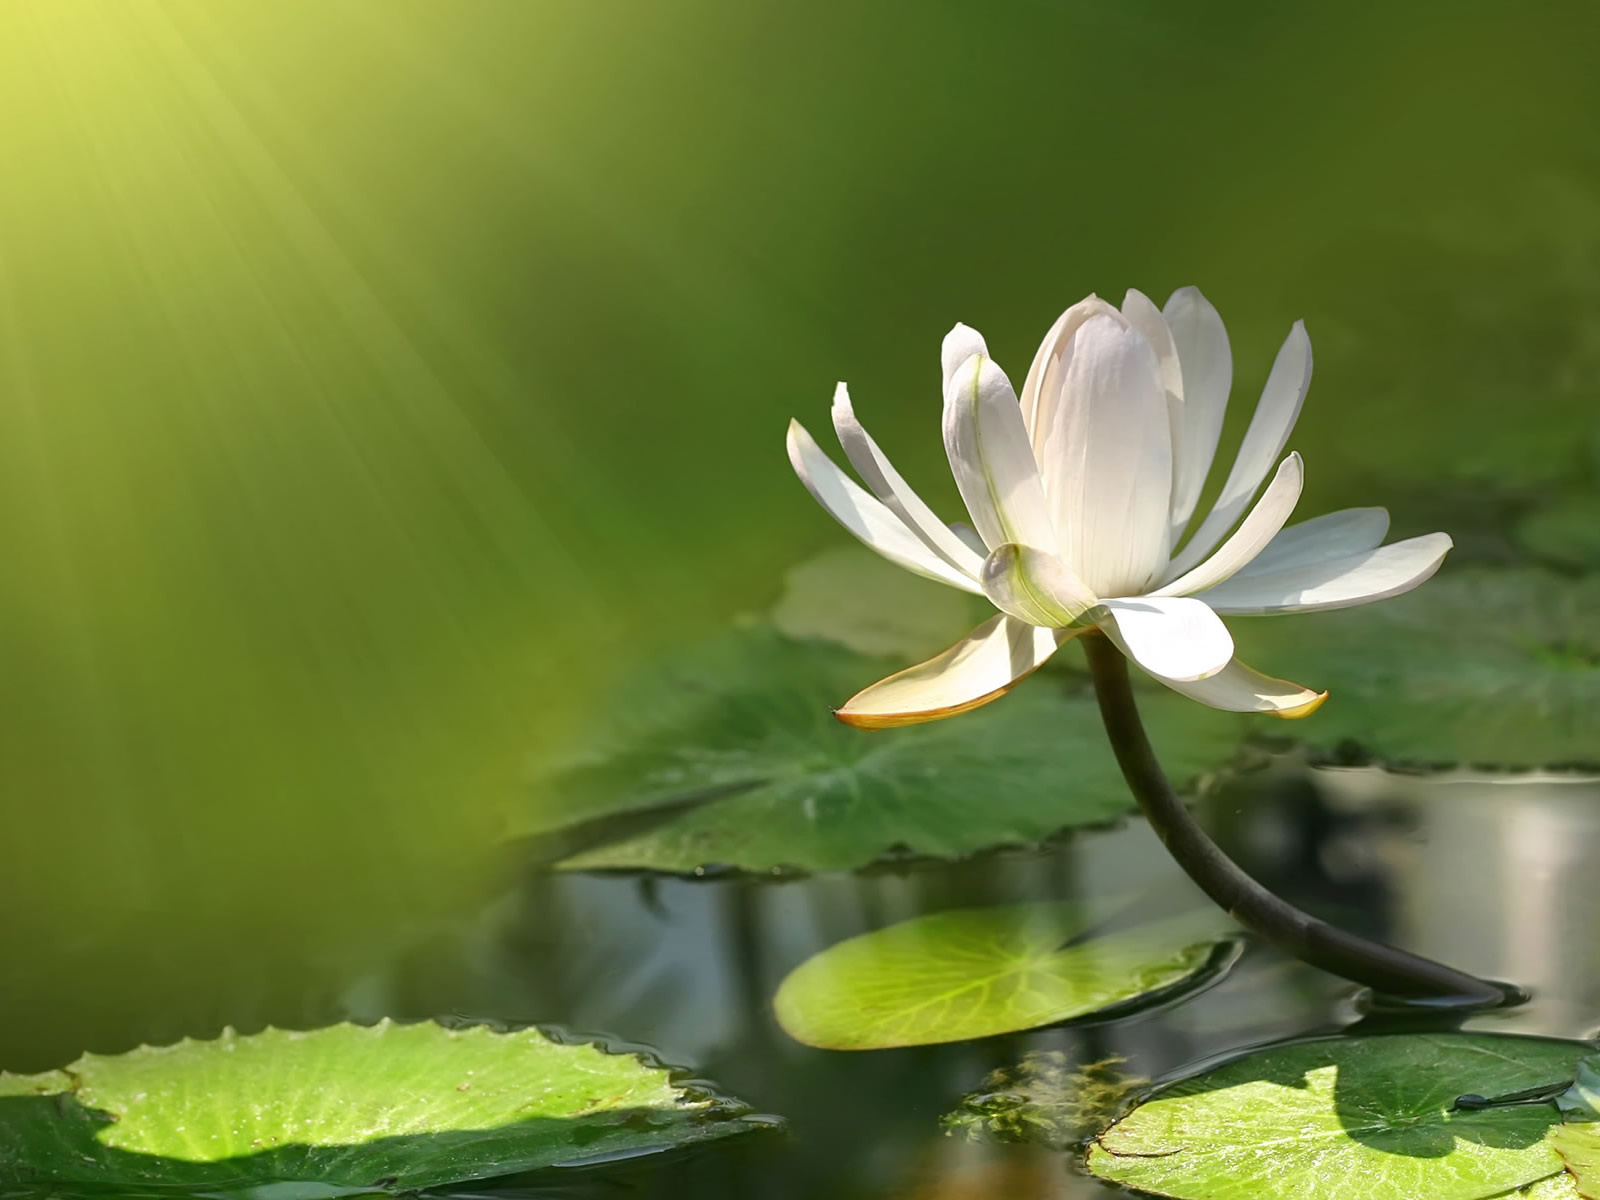 green-desktop-wallpaper-with-water-lily